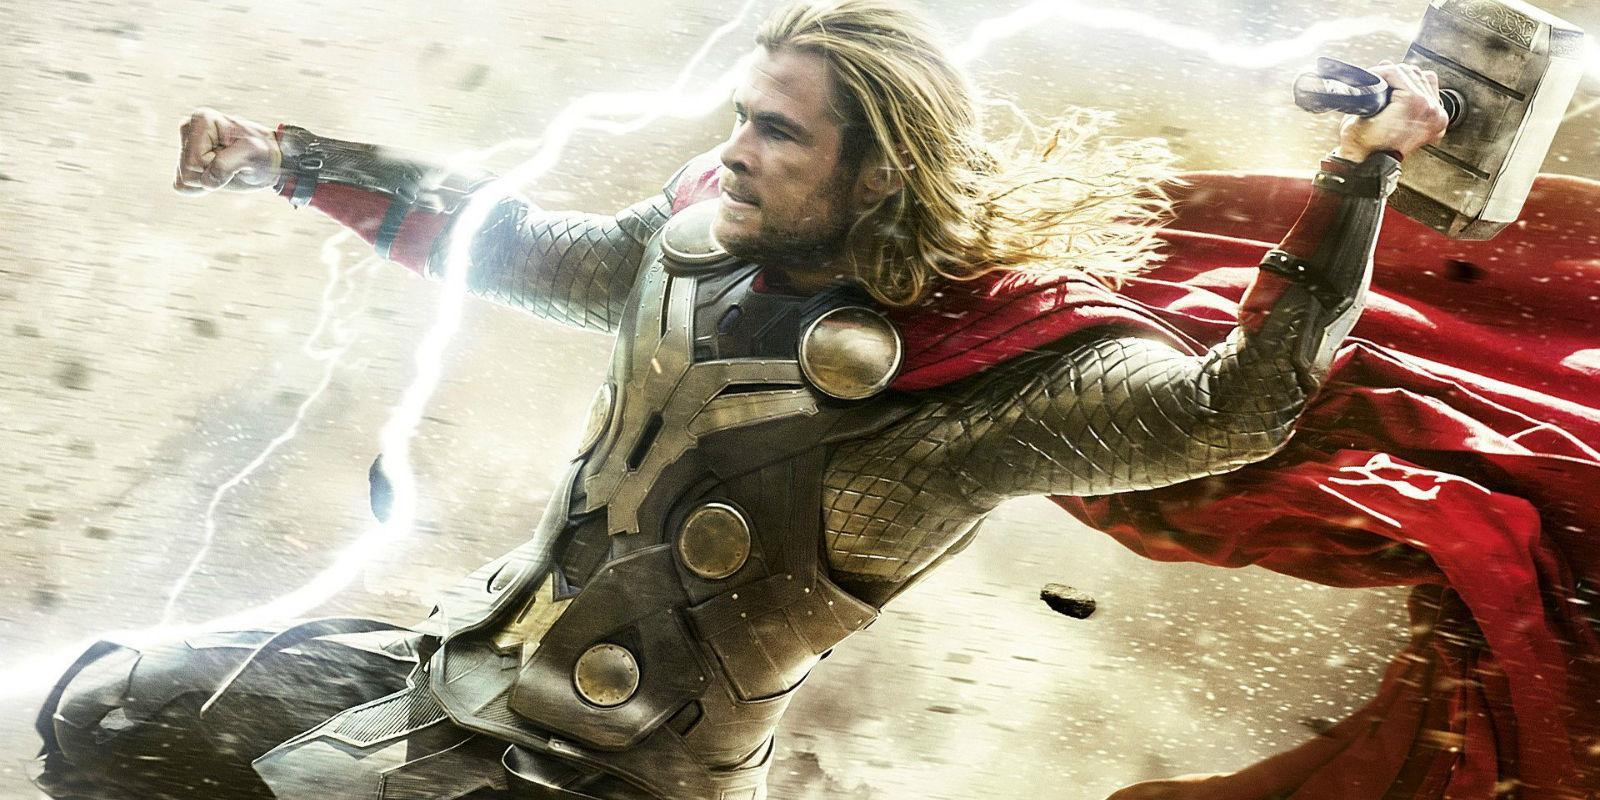 Thor: Ragnarok: First footage shown by Disney at Cinema Con 2017